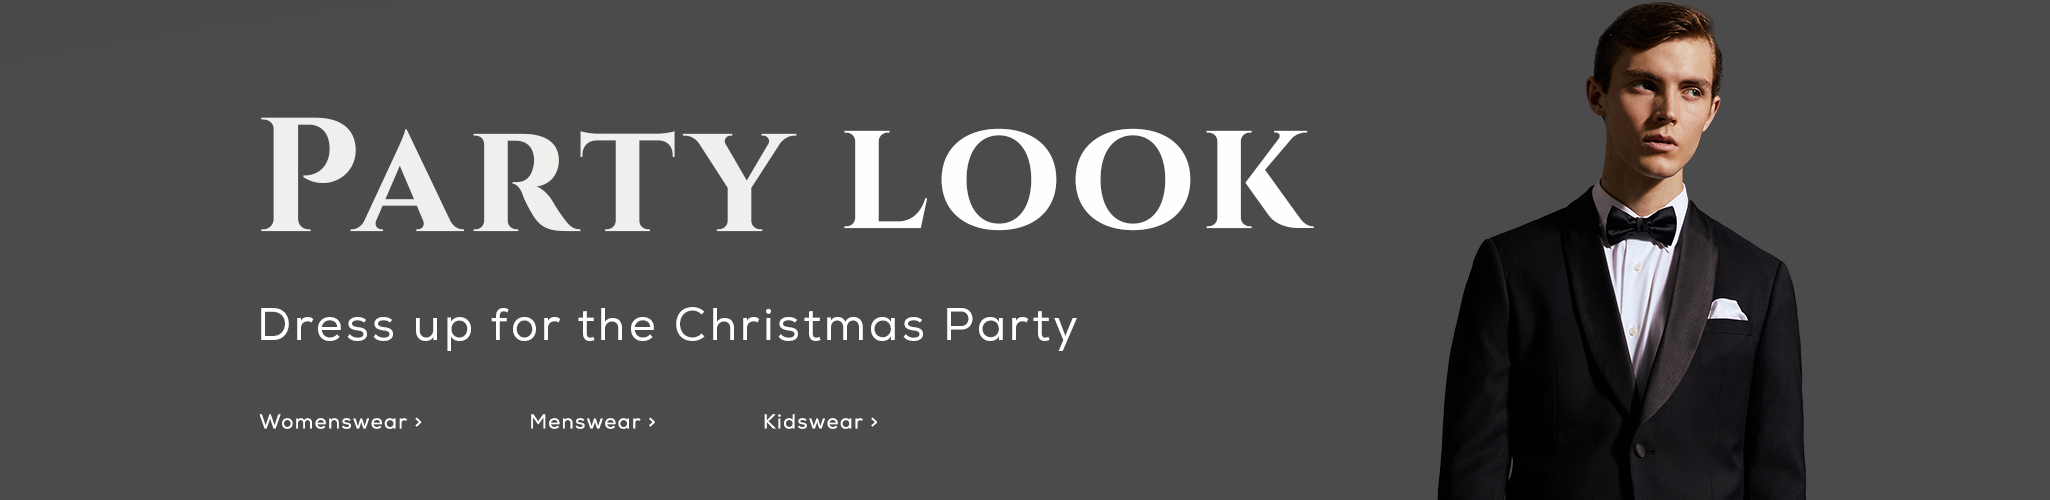 Party Look | OVS